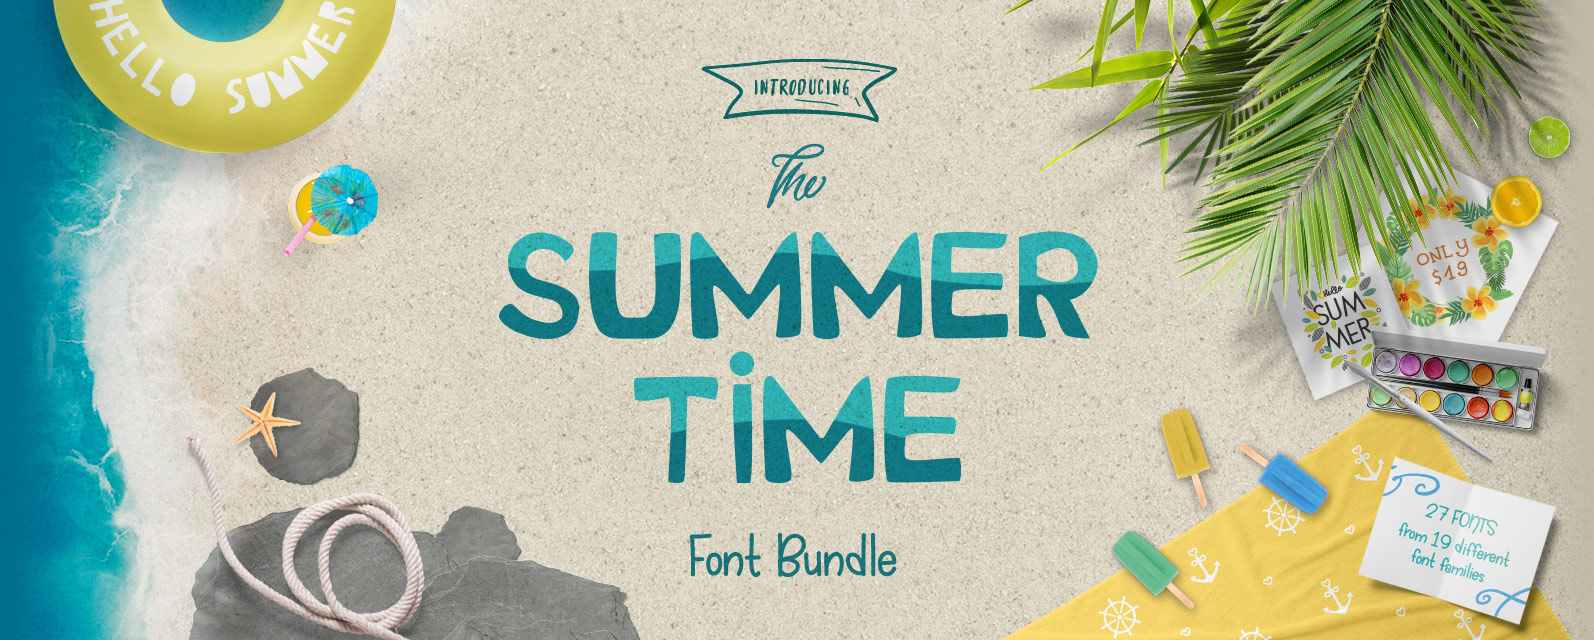 The Summer Time Font Bundle Cover